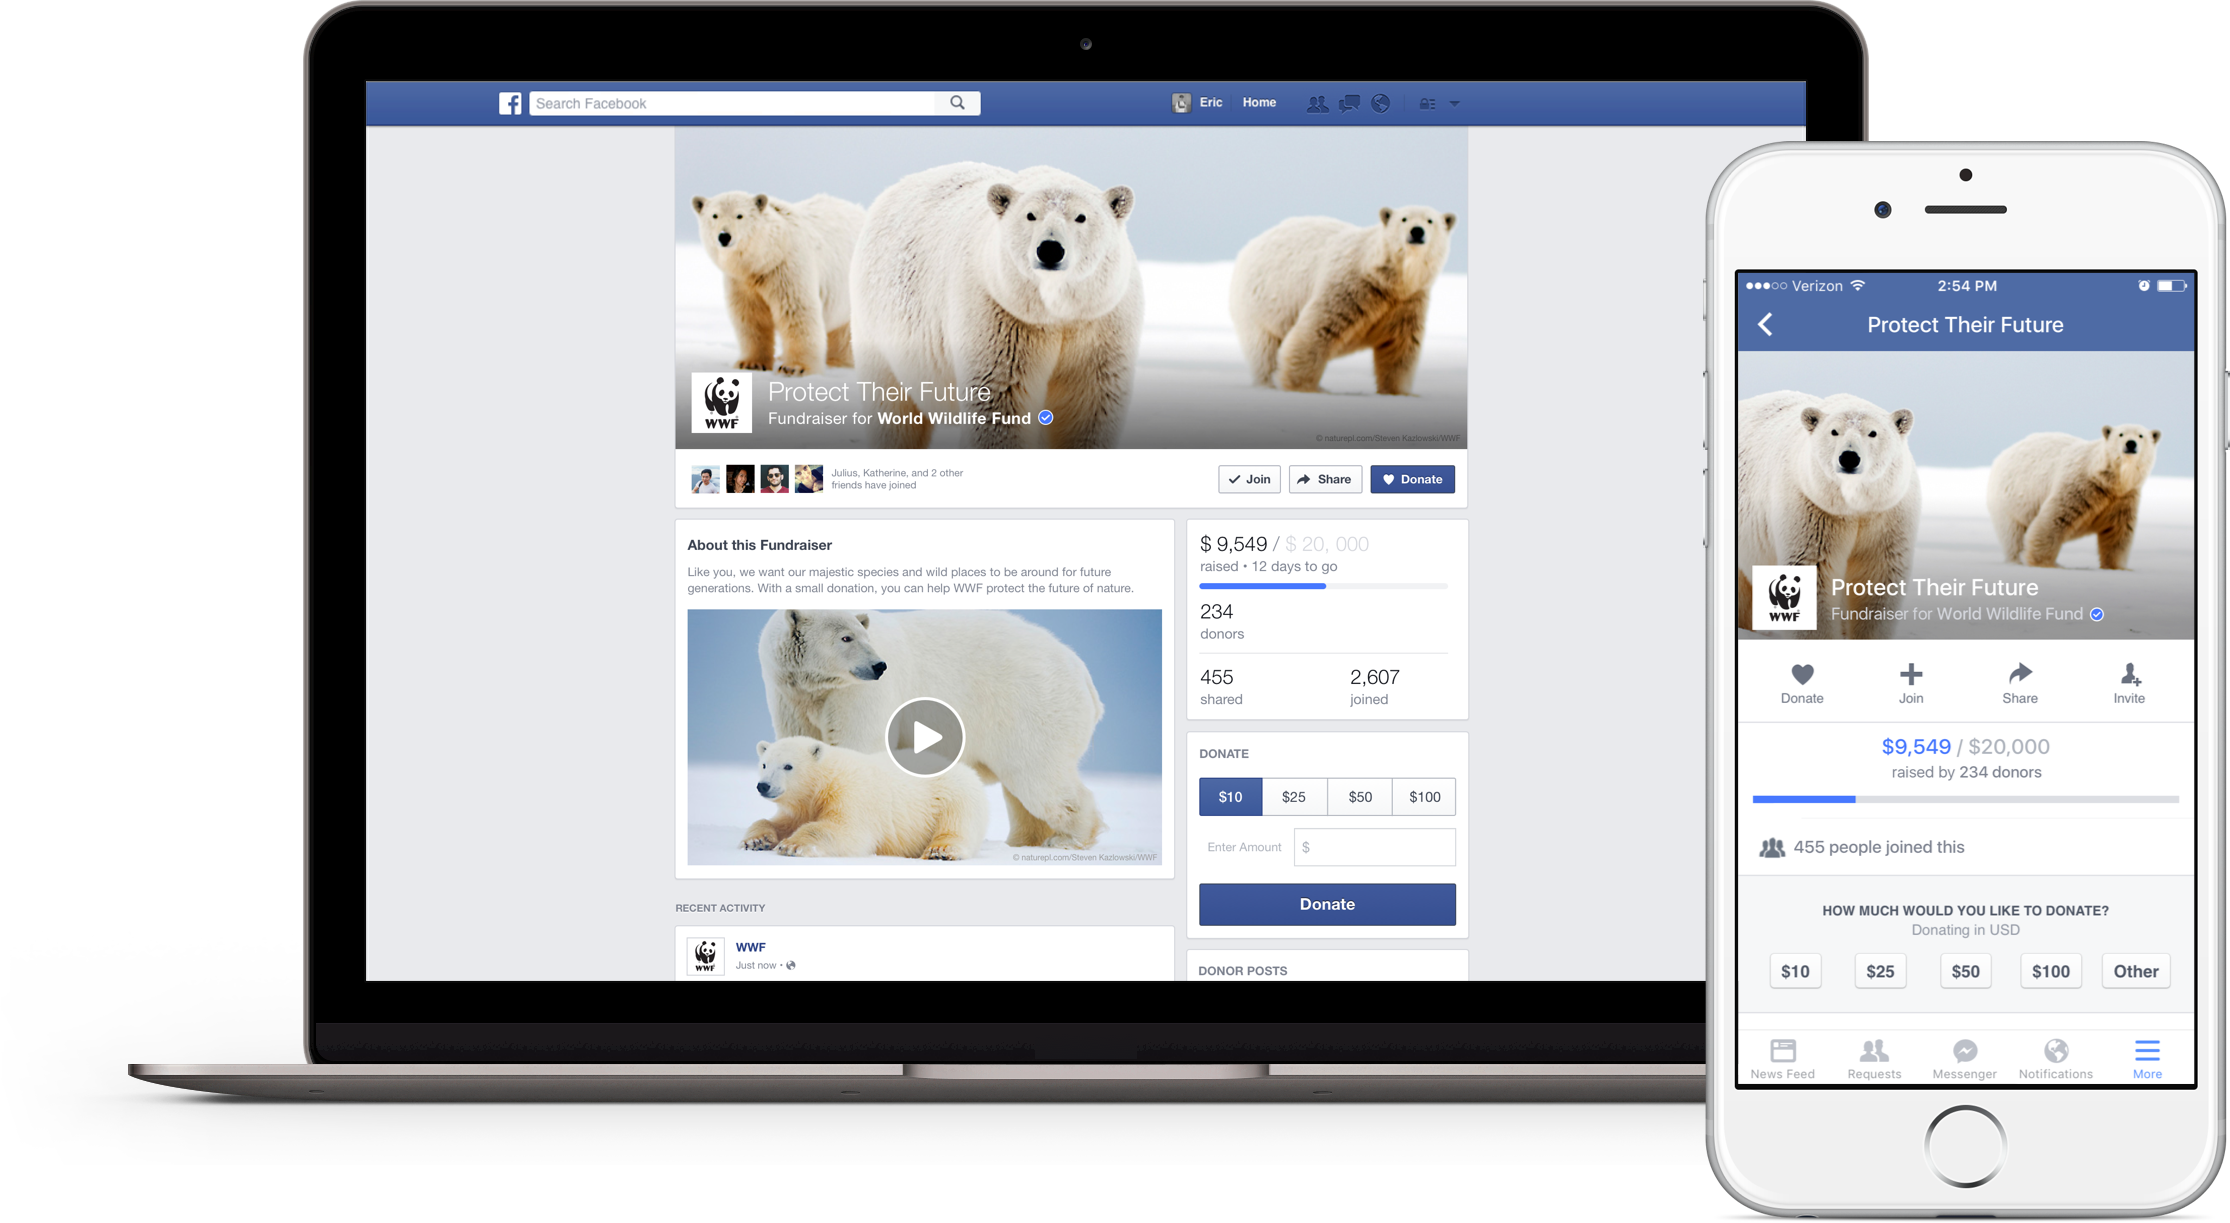 Facebook's new tools for non-profits include a donate button and fundraiser pages